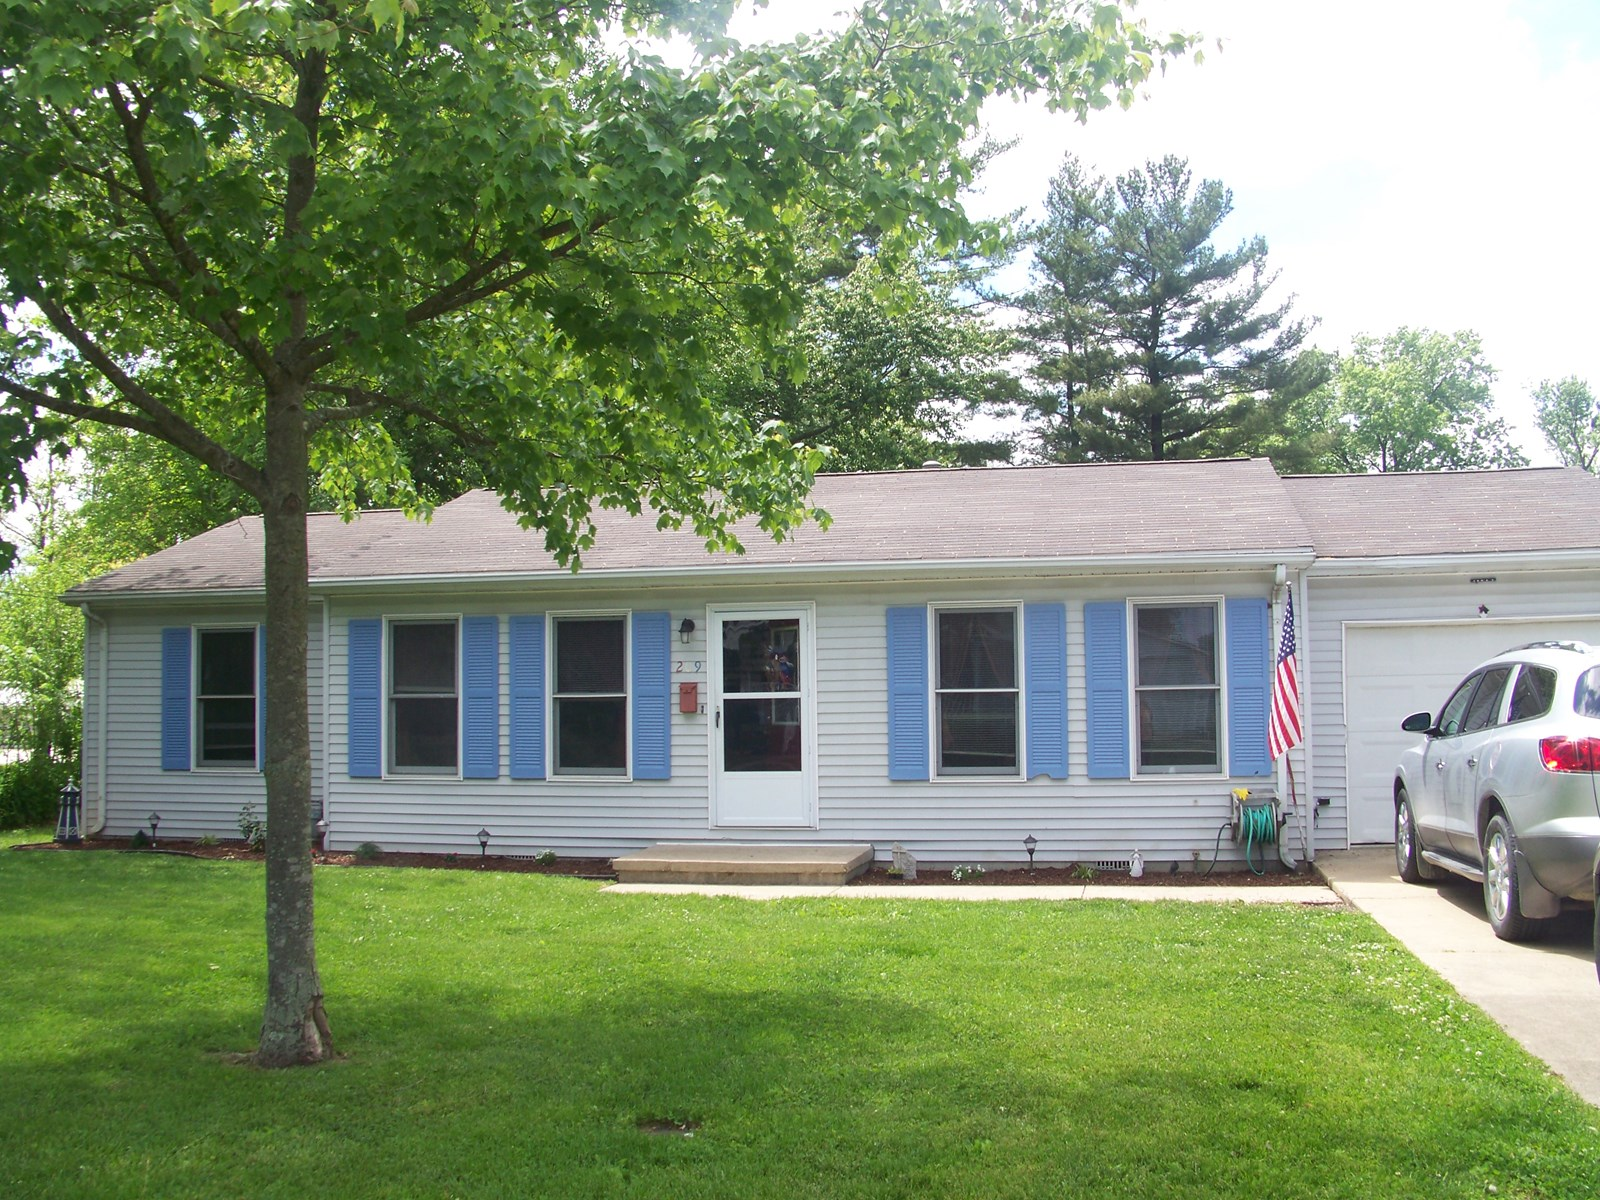 3 Bedroom, 2 Bath Home, on 2 Lots, Robinson, IL